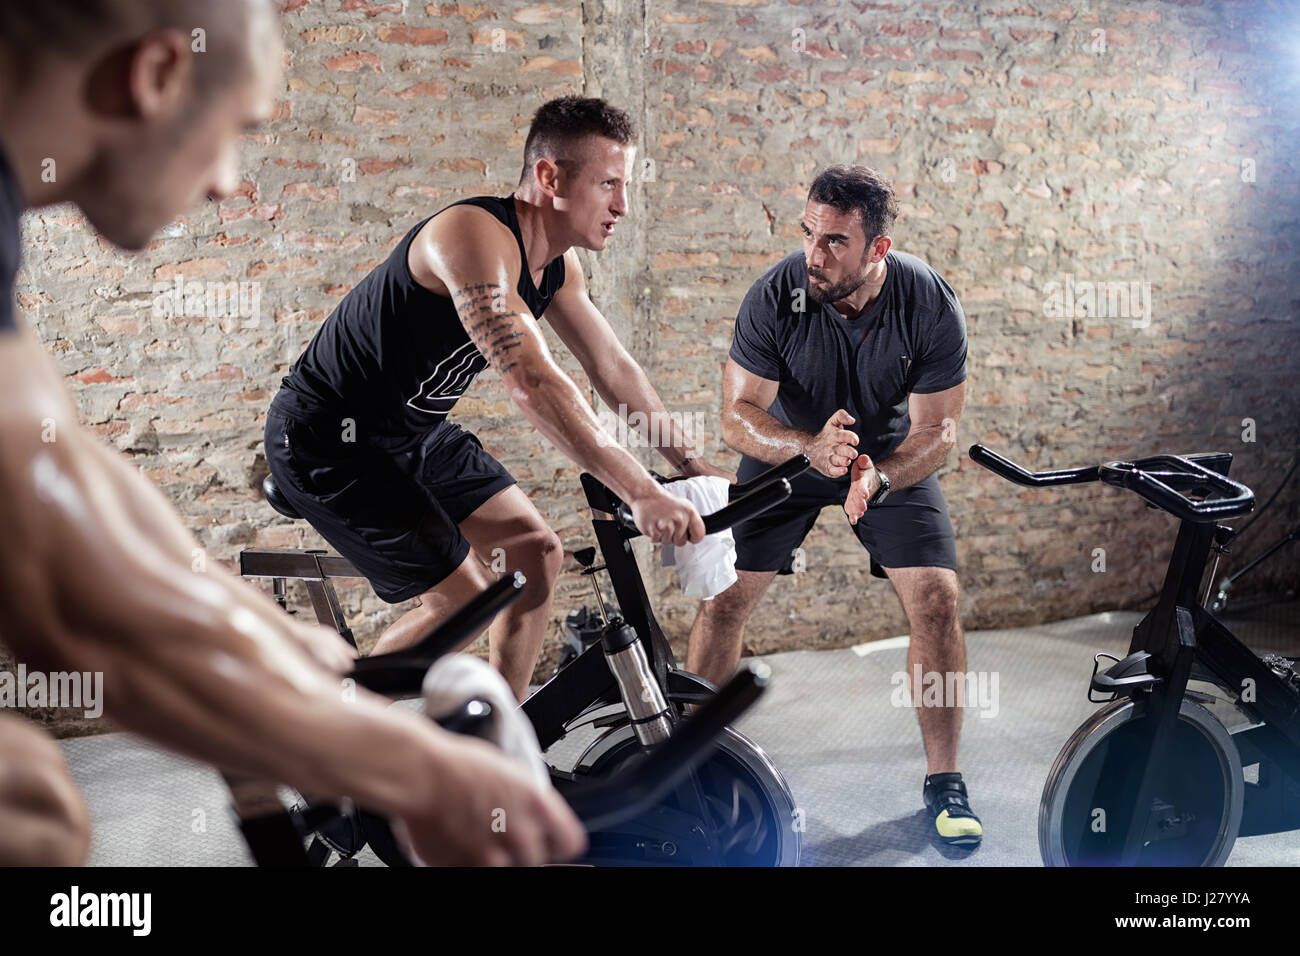 trainer gives support young man on a spinning training - Stock Image